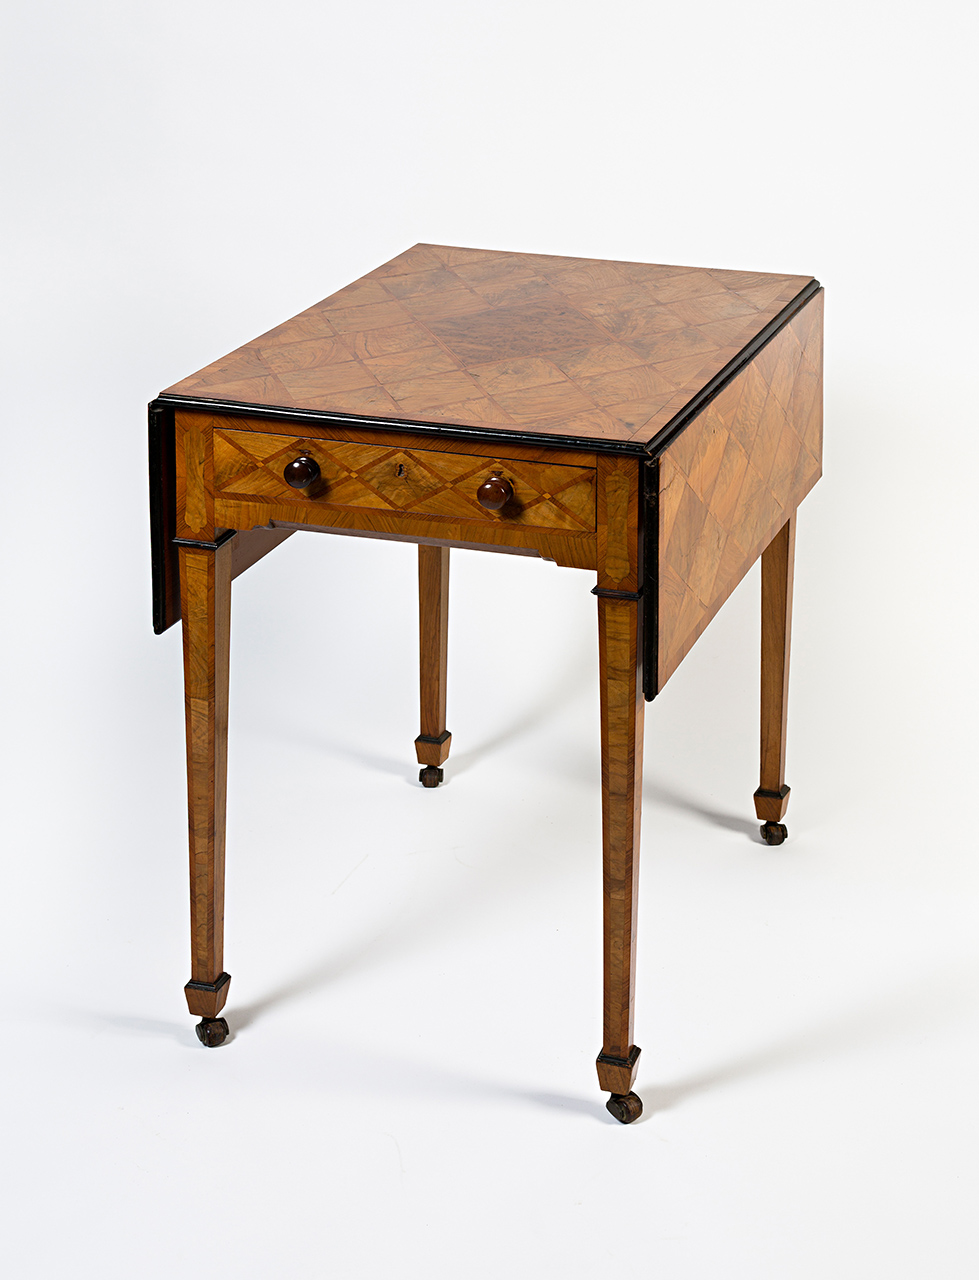 A George III Pembroke table by Henry Tatam, late 18th Century.